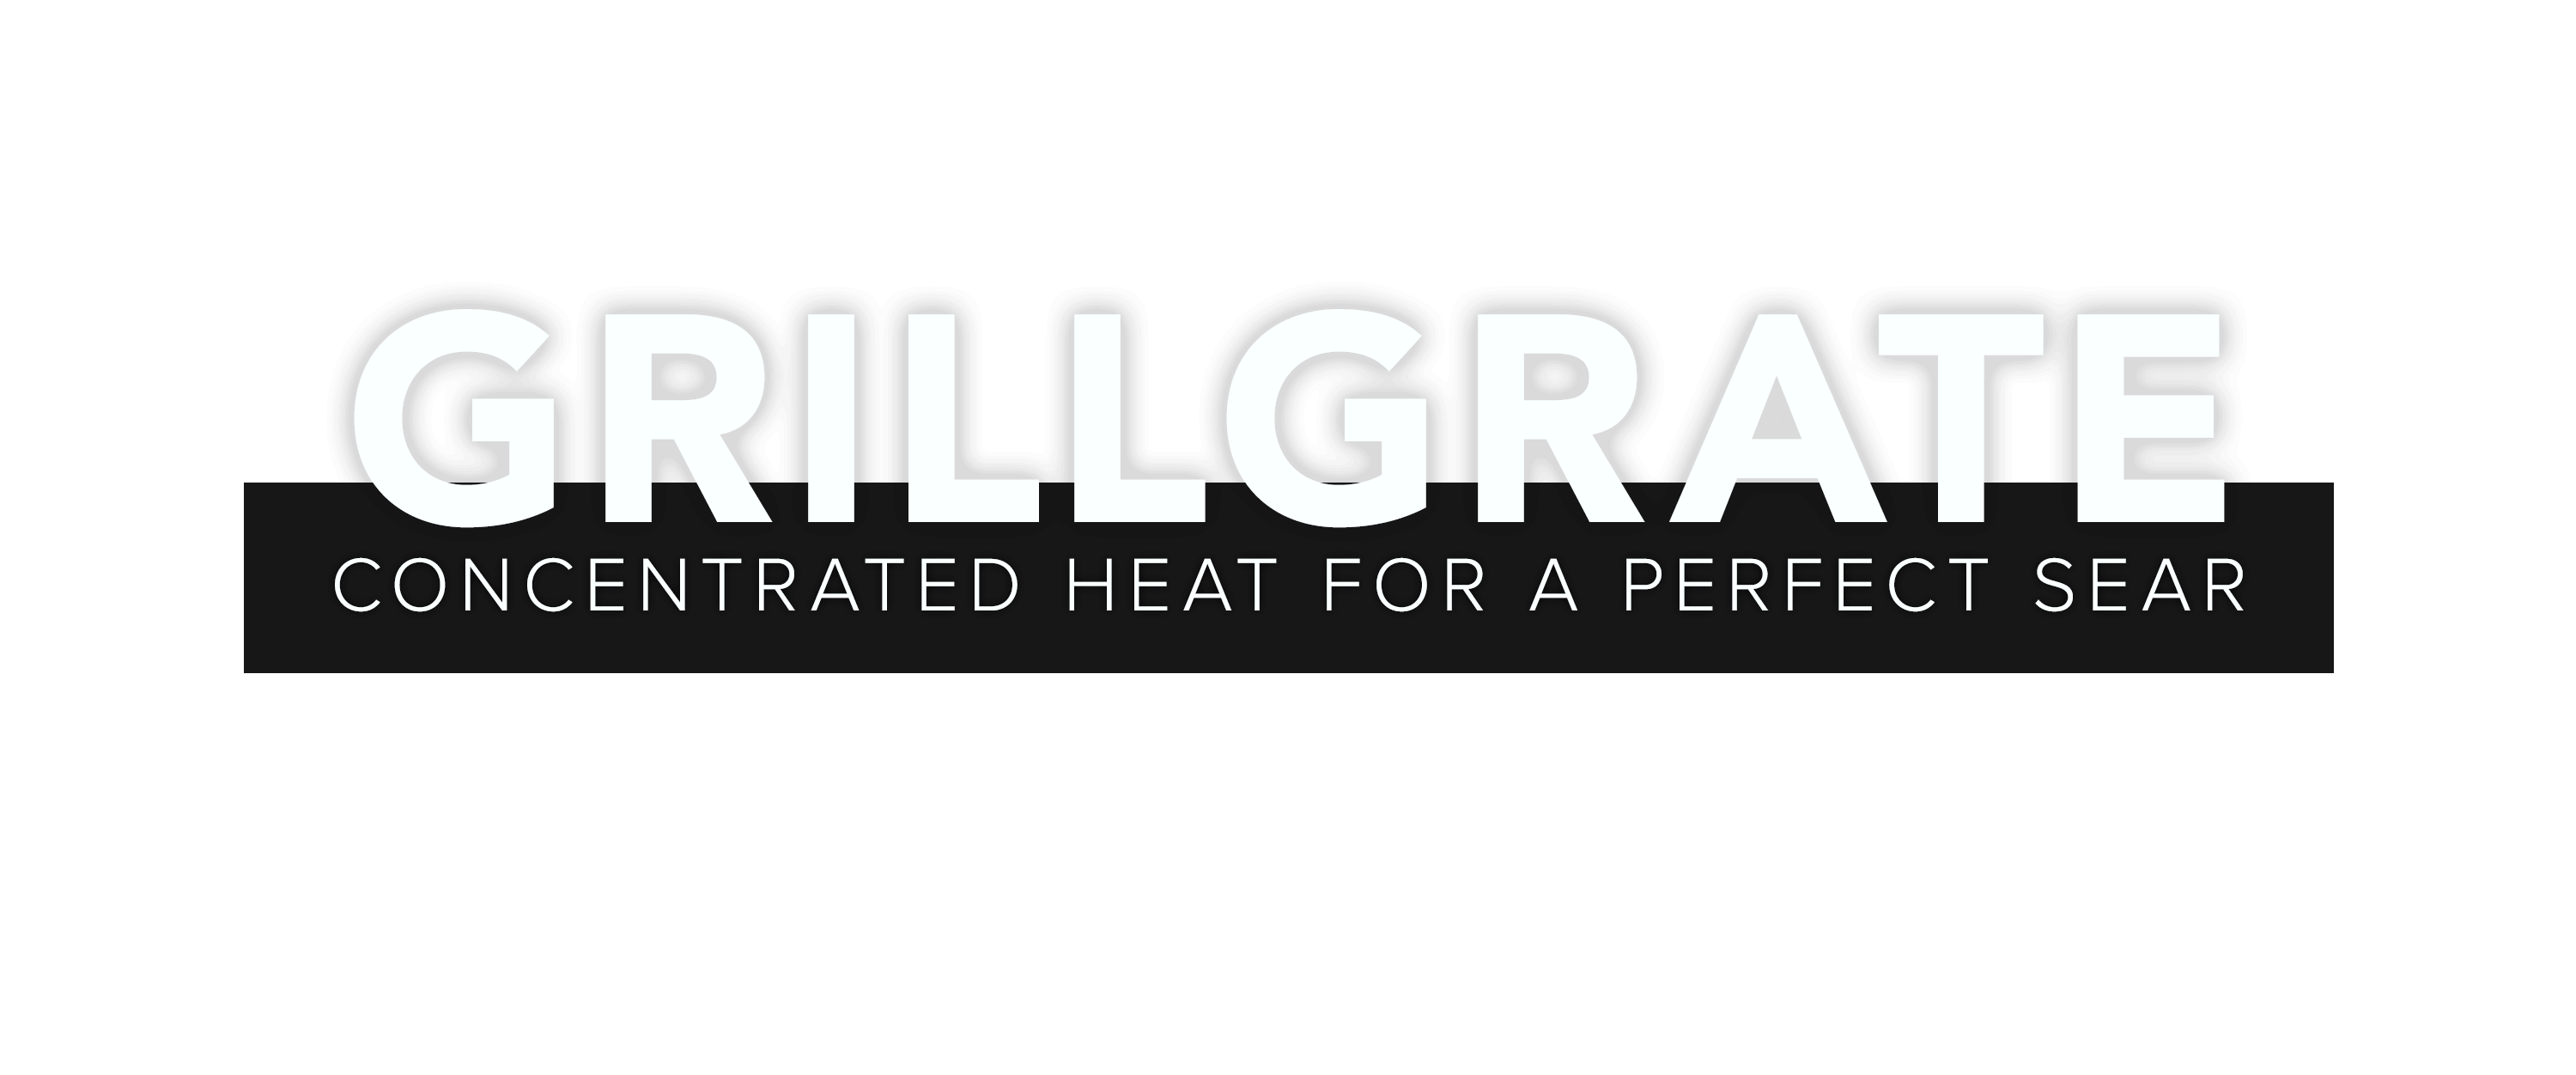 Grillgrate - Concentrated Heat for a Perfect Sear